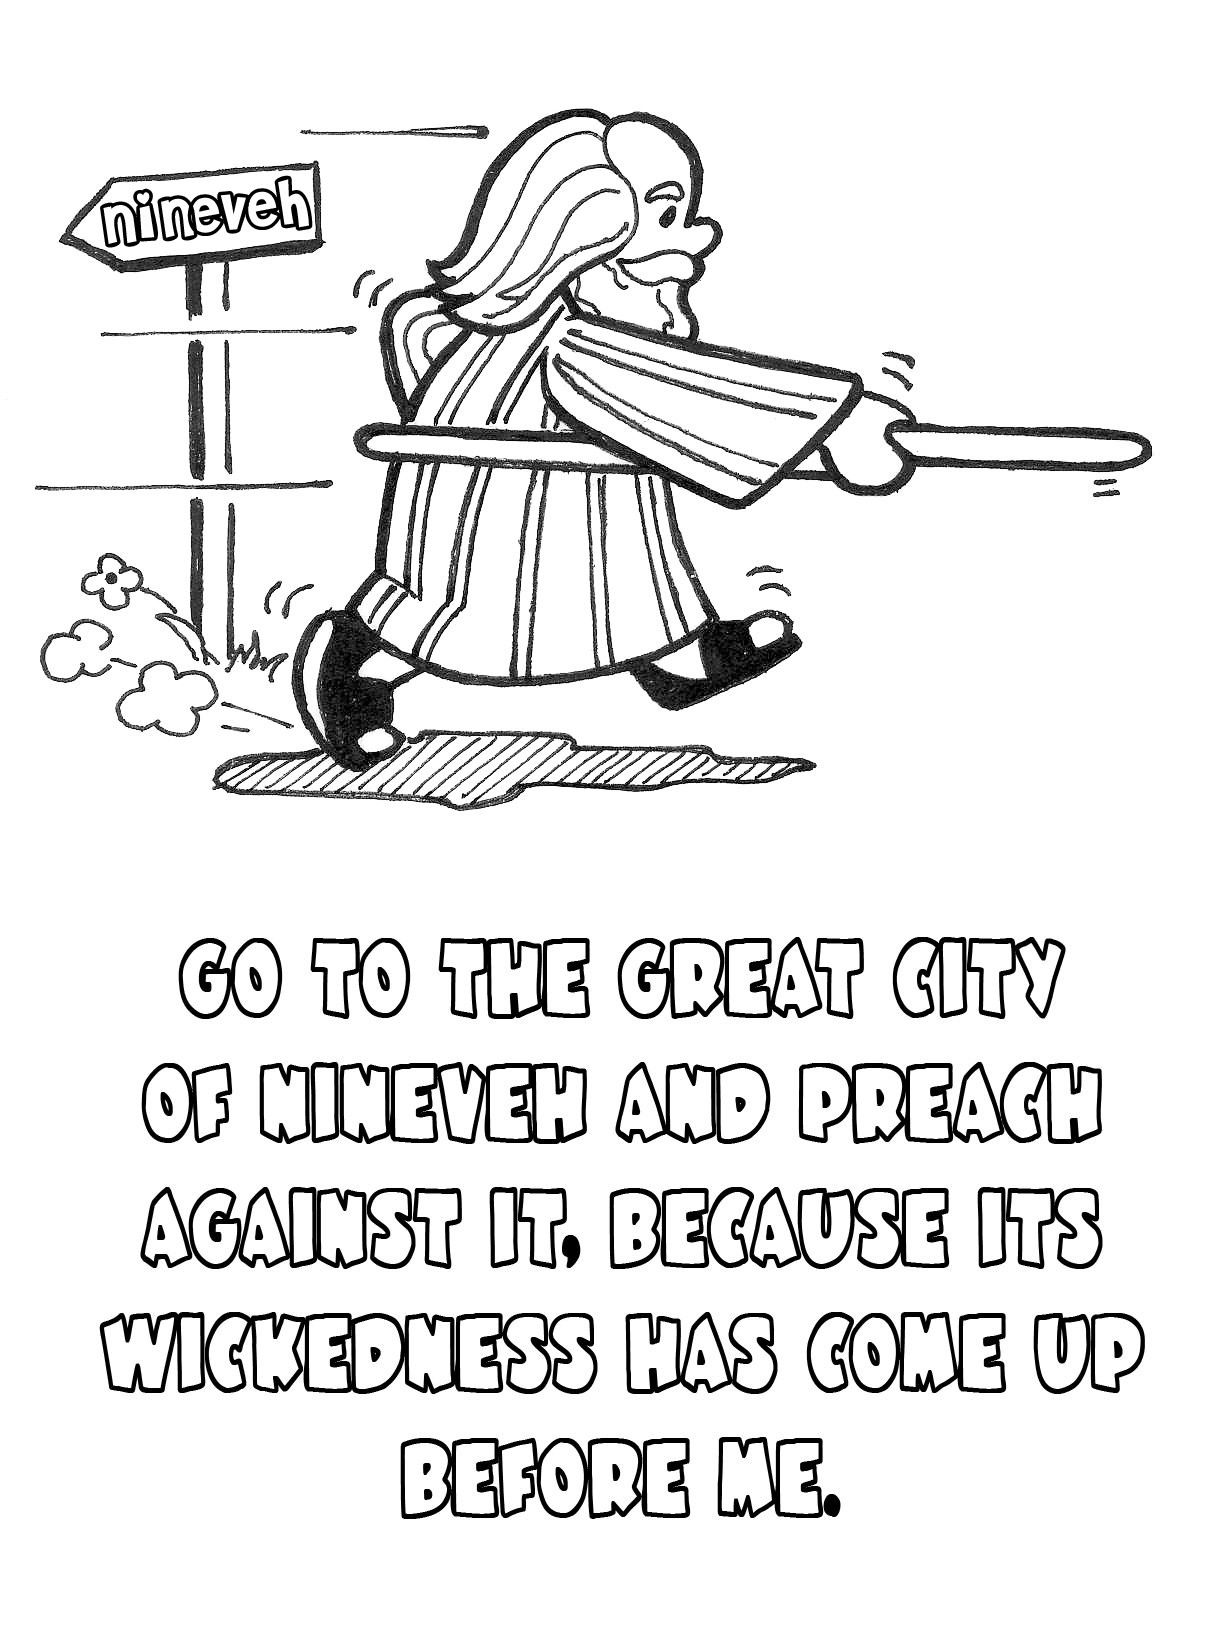 Christian Coloring Pages For Kids Compliments Of Warren Camp Design Bible Class